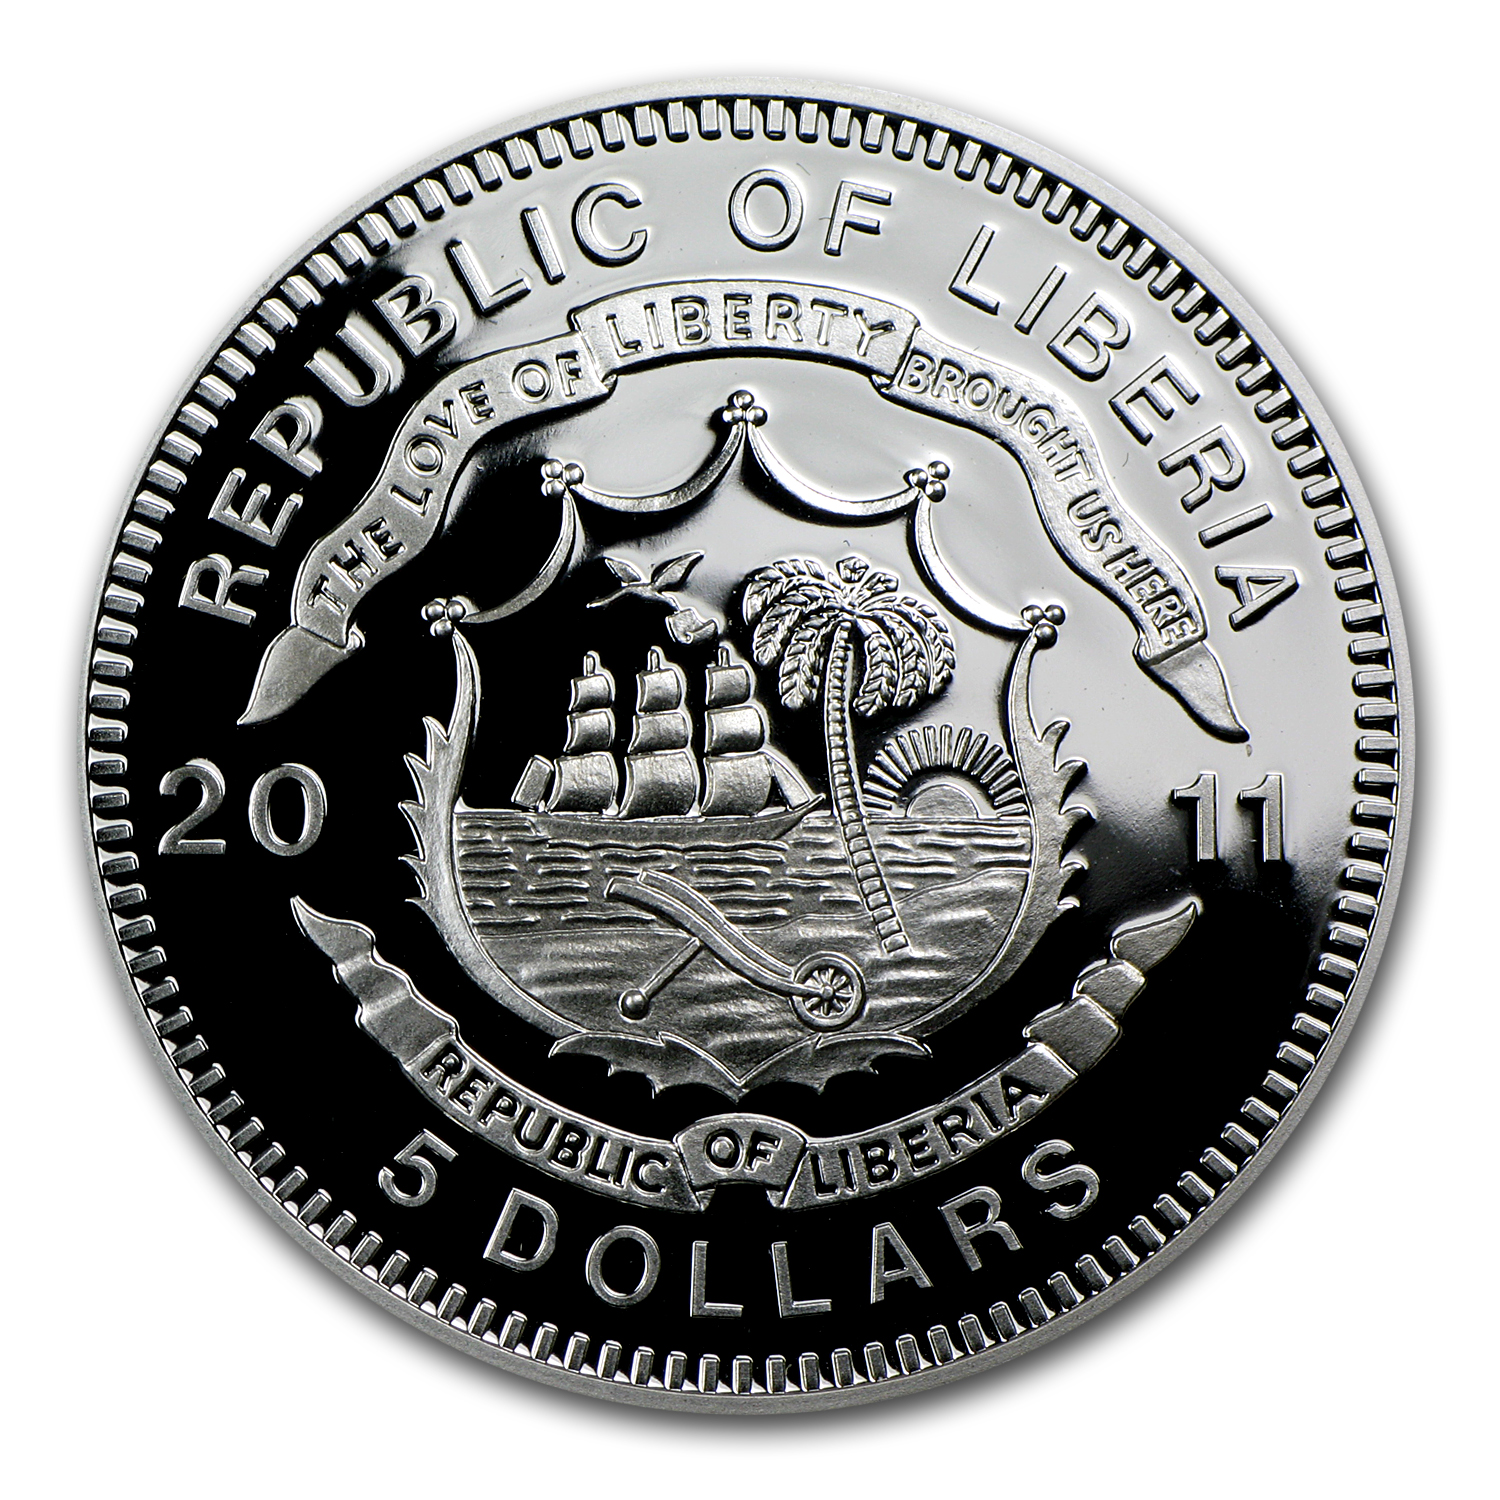 Liberia 2011 5 Dollars Silver Proof - Blue Train